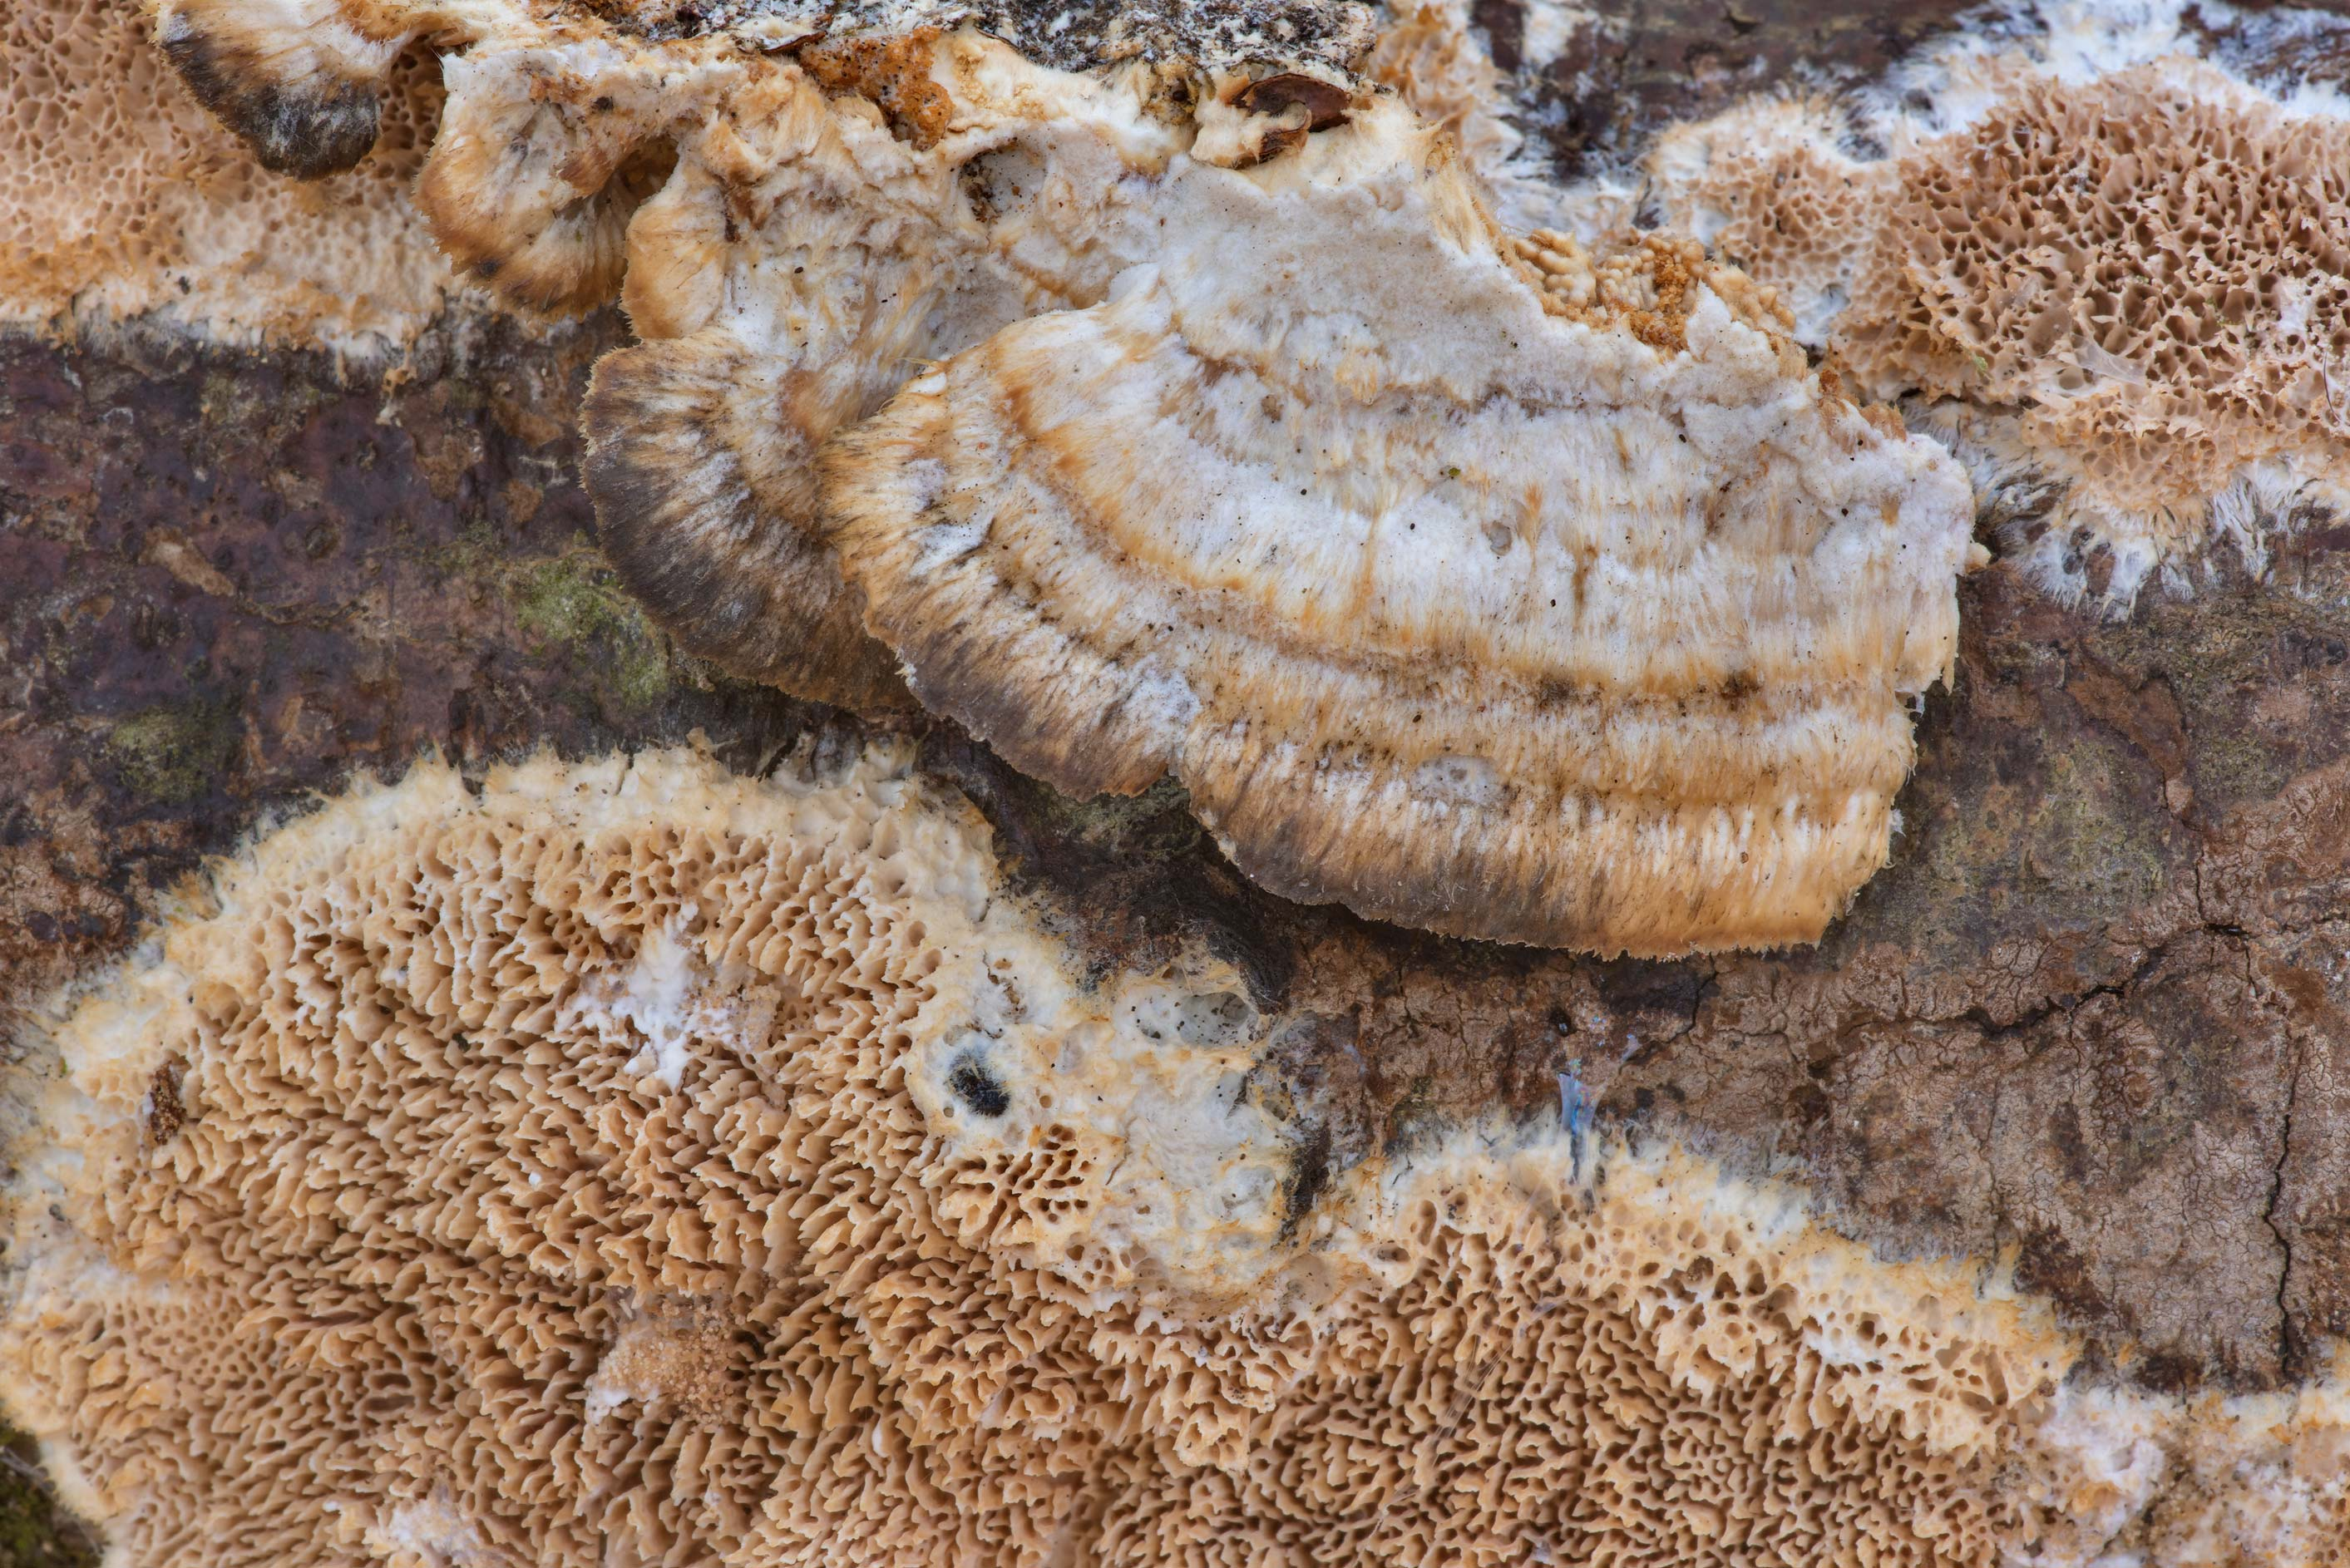 Caps and pore surface of polypore mushroom...Creek Park. College Station, Texas